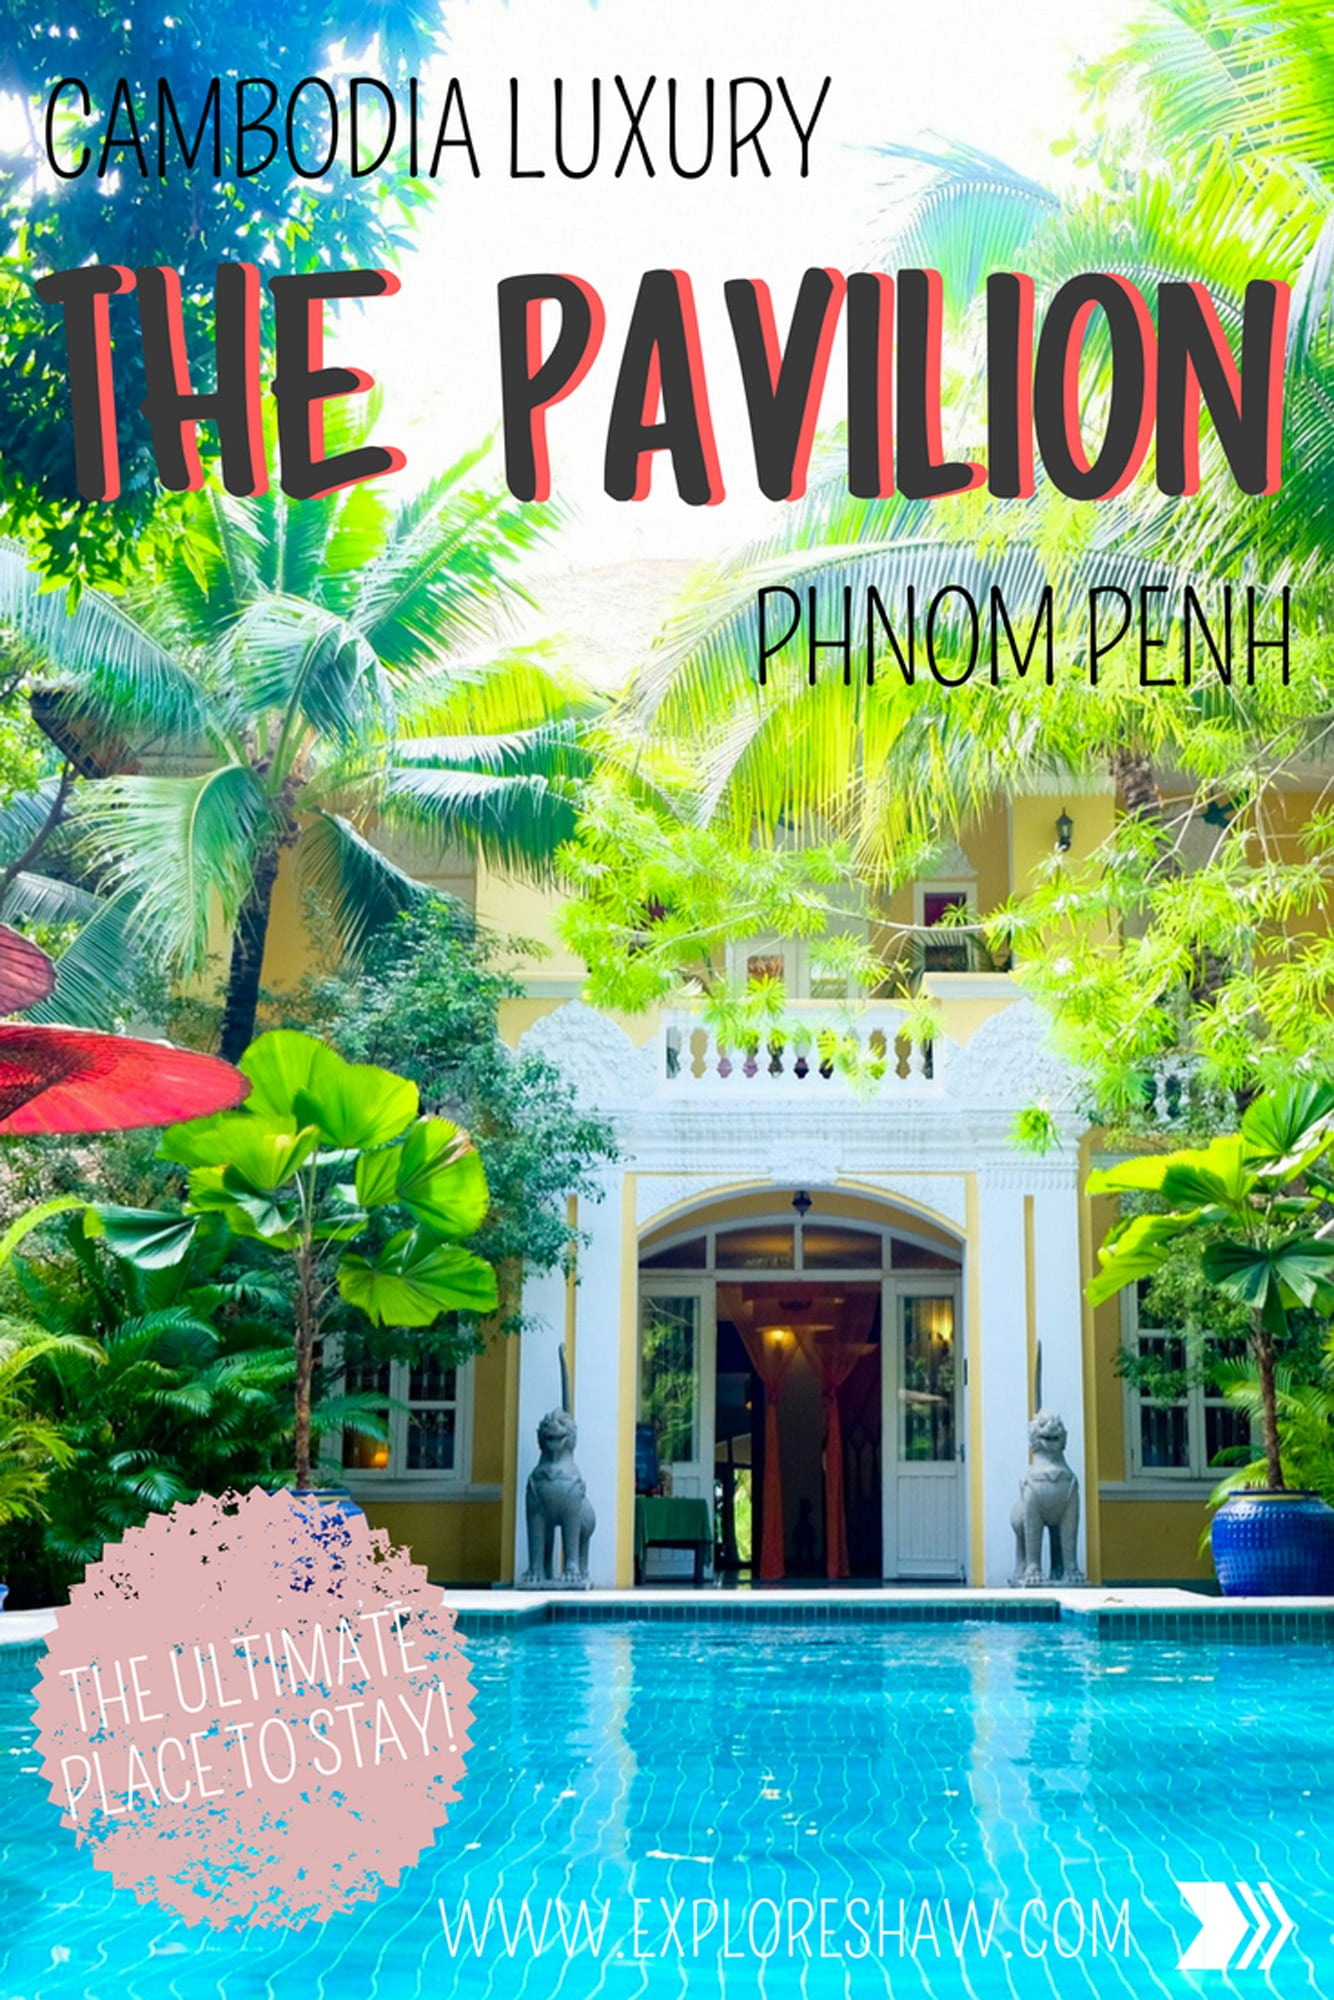 The Pavilion offers a complete sense of tranquility and relaxation from the moment you step through the doors. Everything is peaceful and welcoming and simply just beautiful.  #Cambodia #PhnomPenh #HotelReview